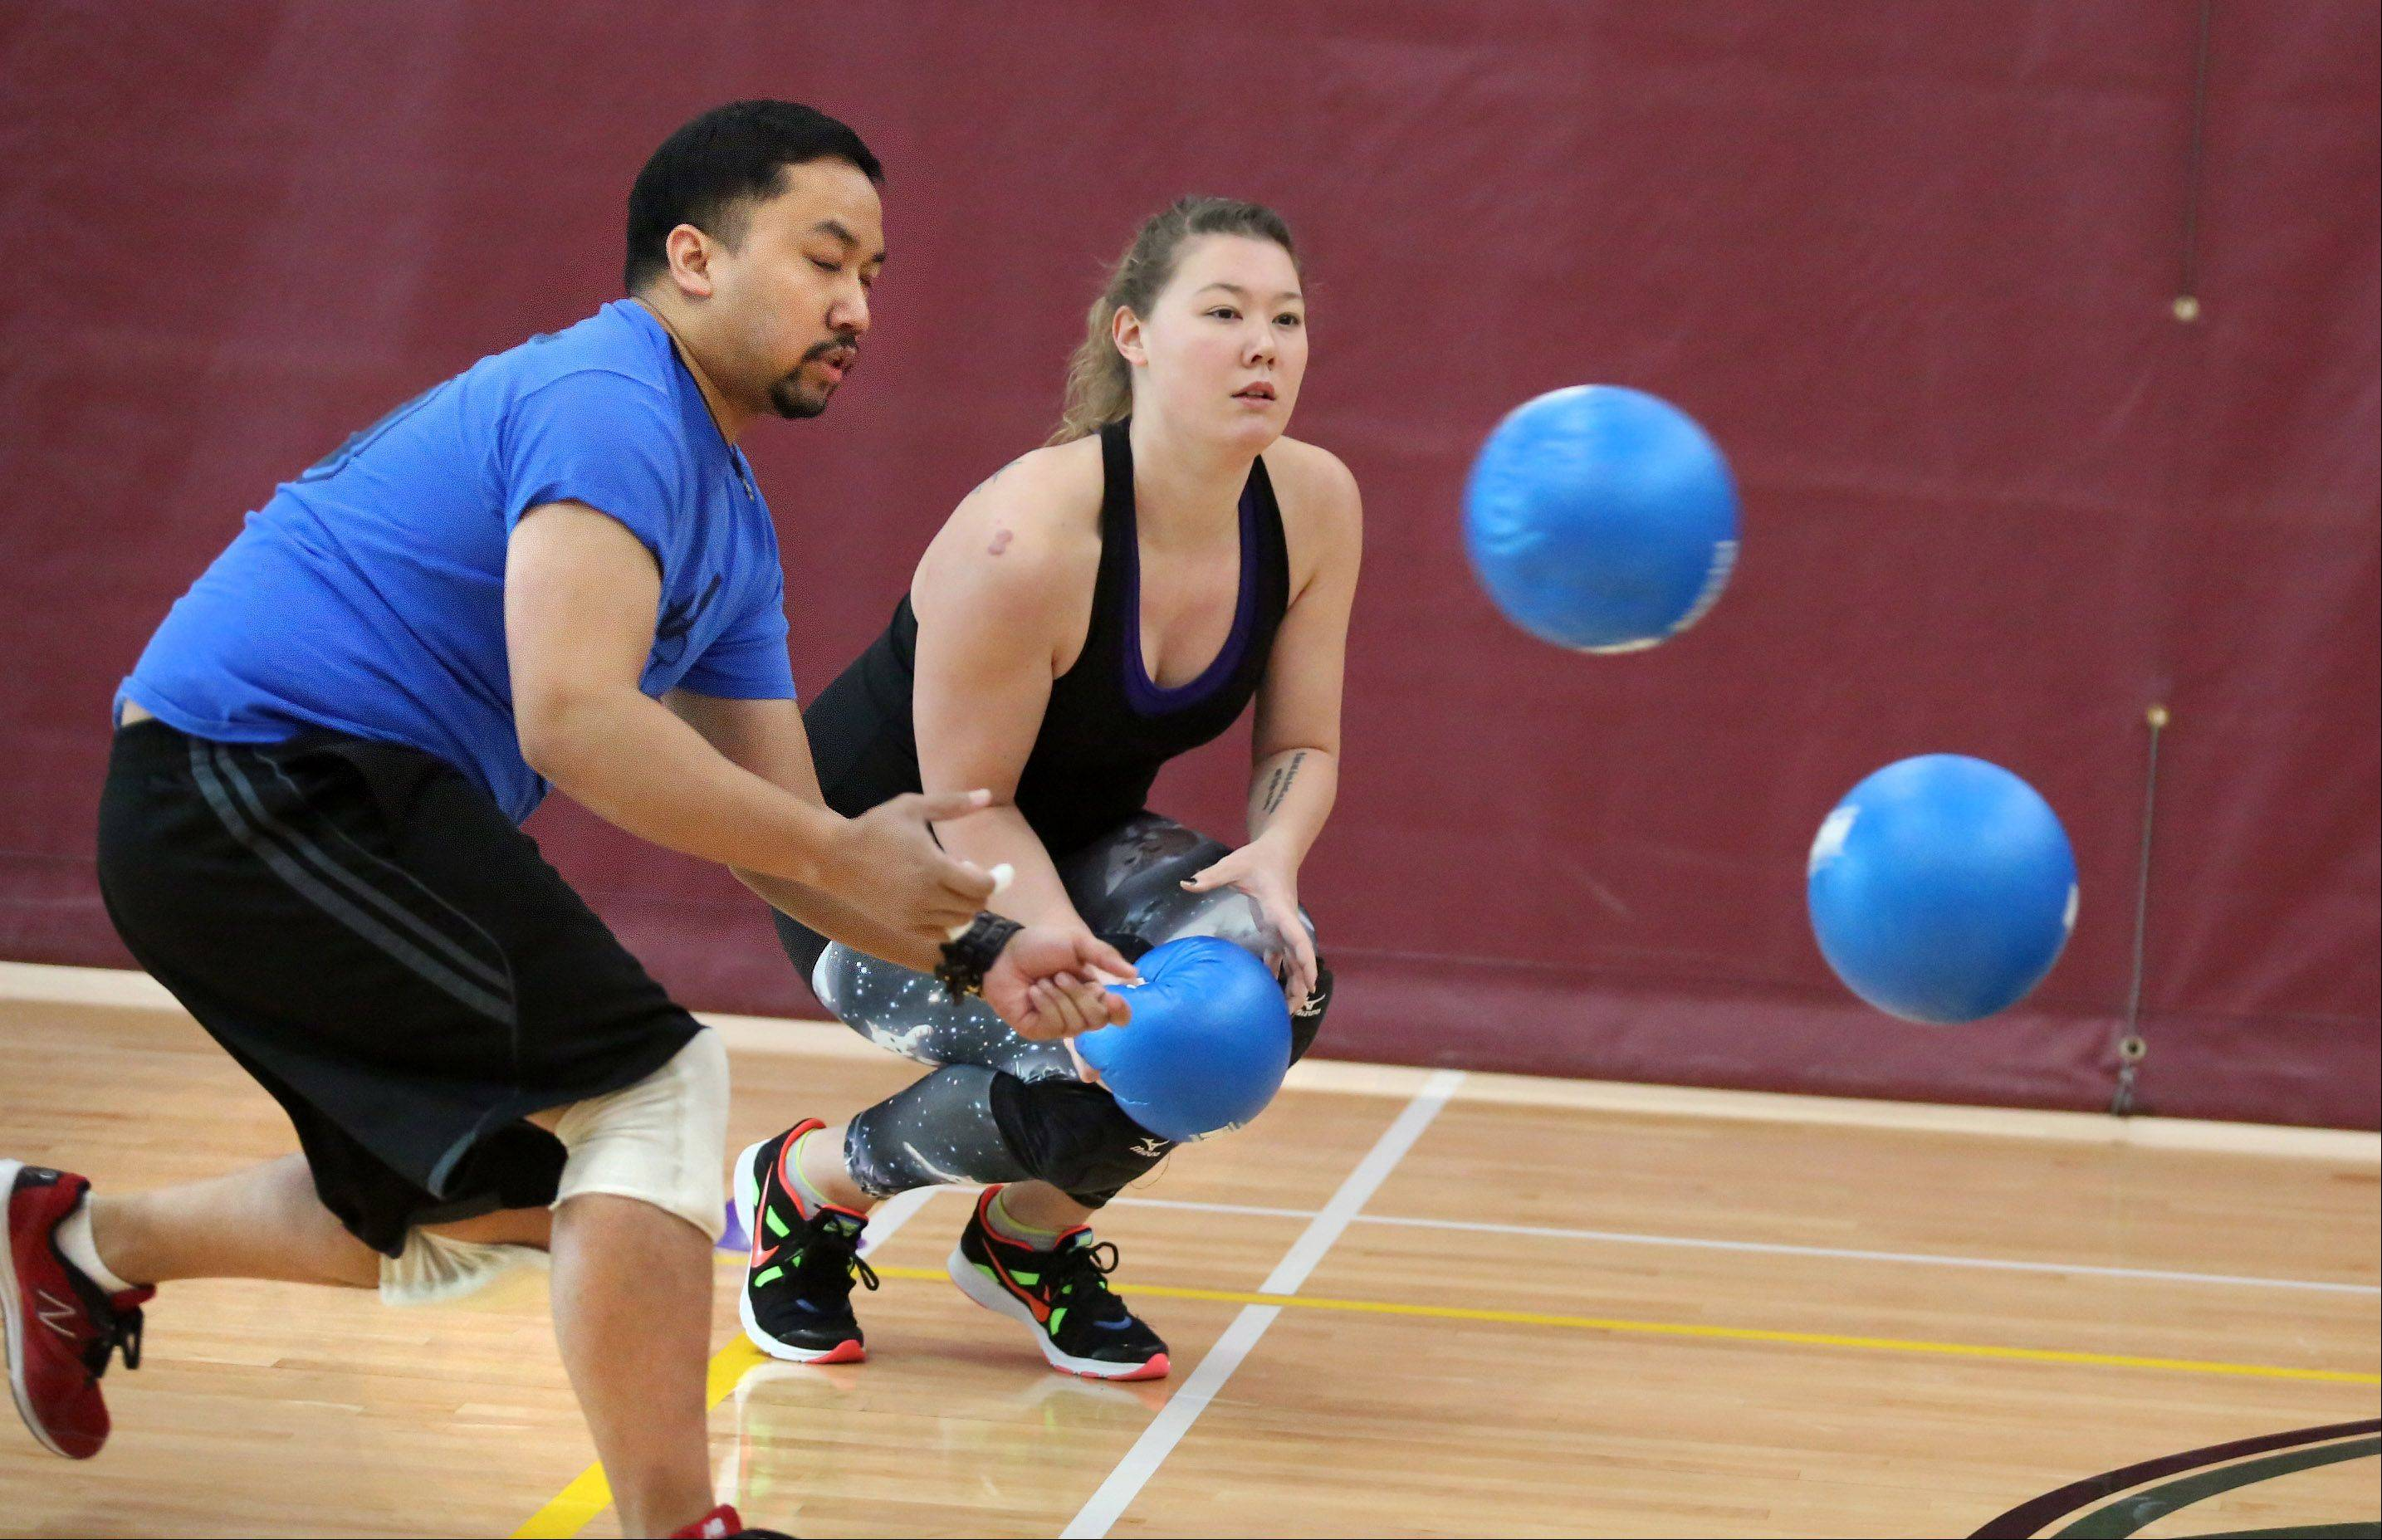 Kat Takeda of Elk Grove Village and Jason Rejoano of Wheeling on Team Chakes dodge two balls before Takeda throws the ball during adult dodgeball championships in the National Amateur Dodgeball Association Winter Nationals at the Sport Center on Saturday in Schaumburg.